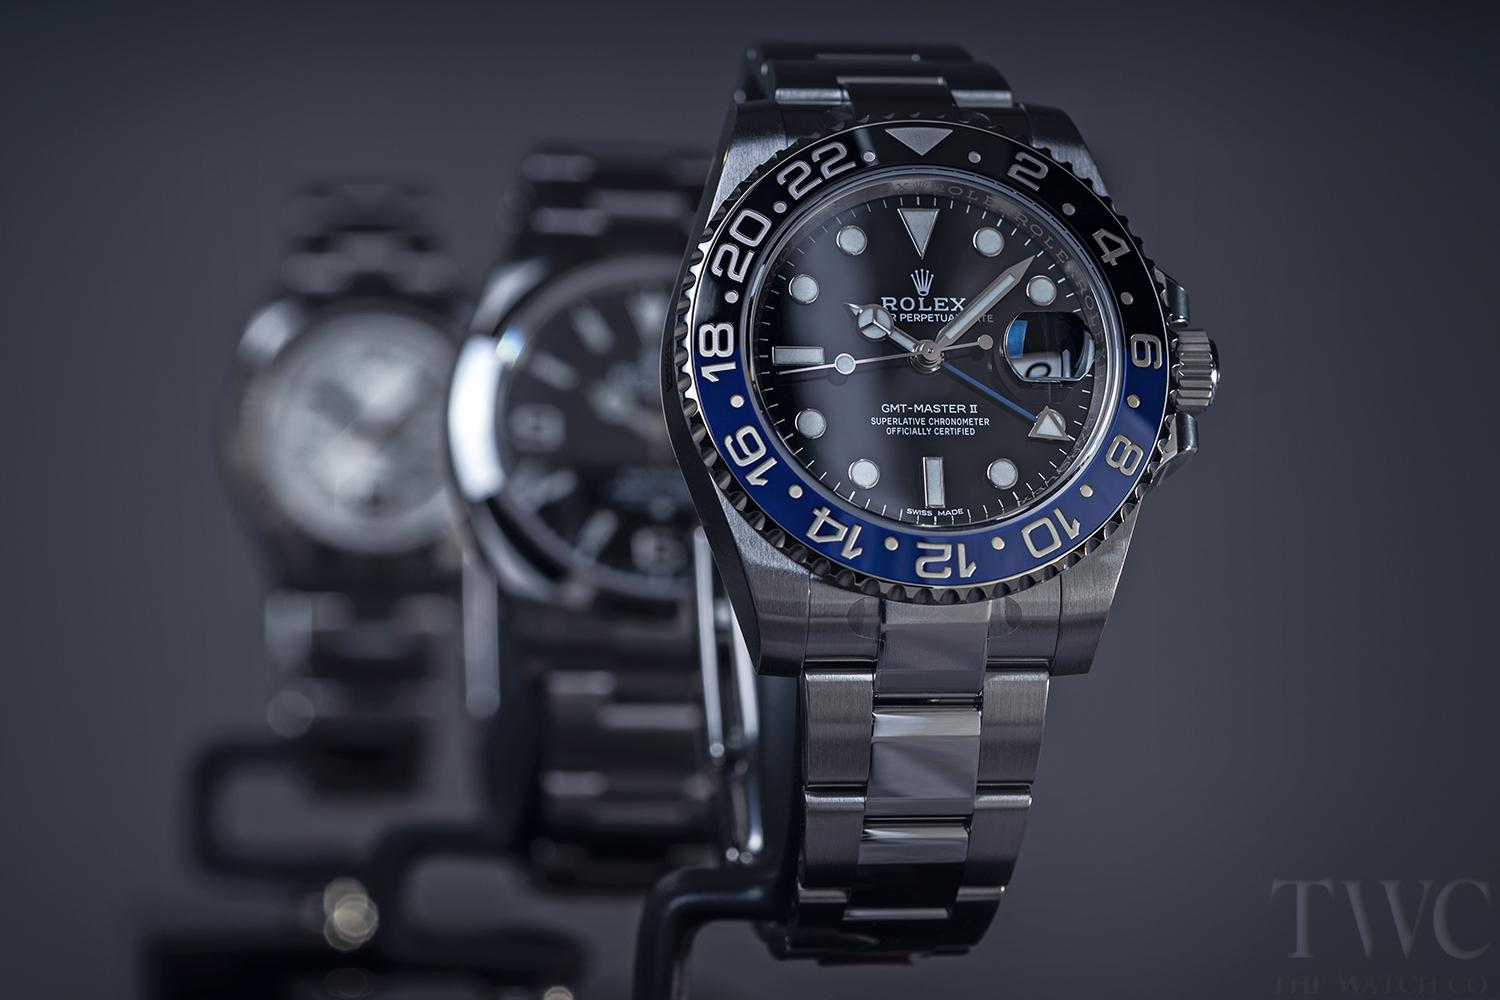 A Guide To Rolex Watch Nicknames